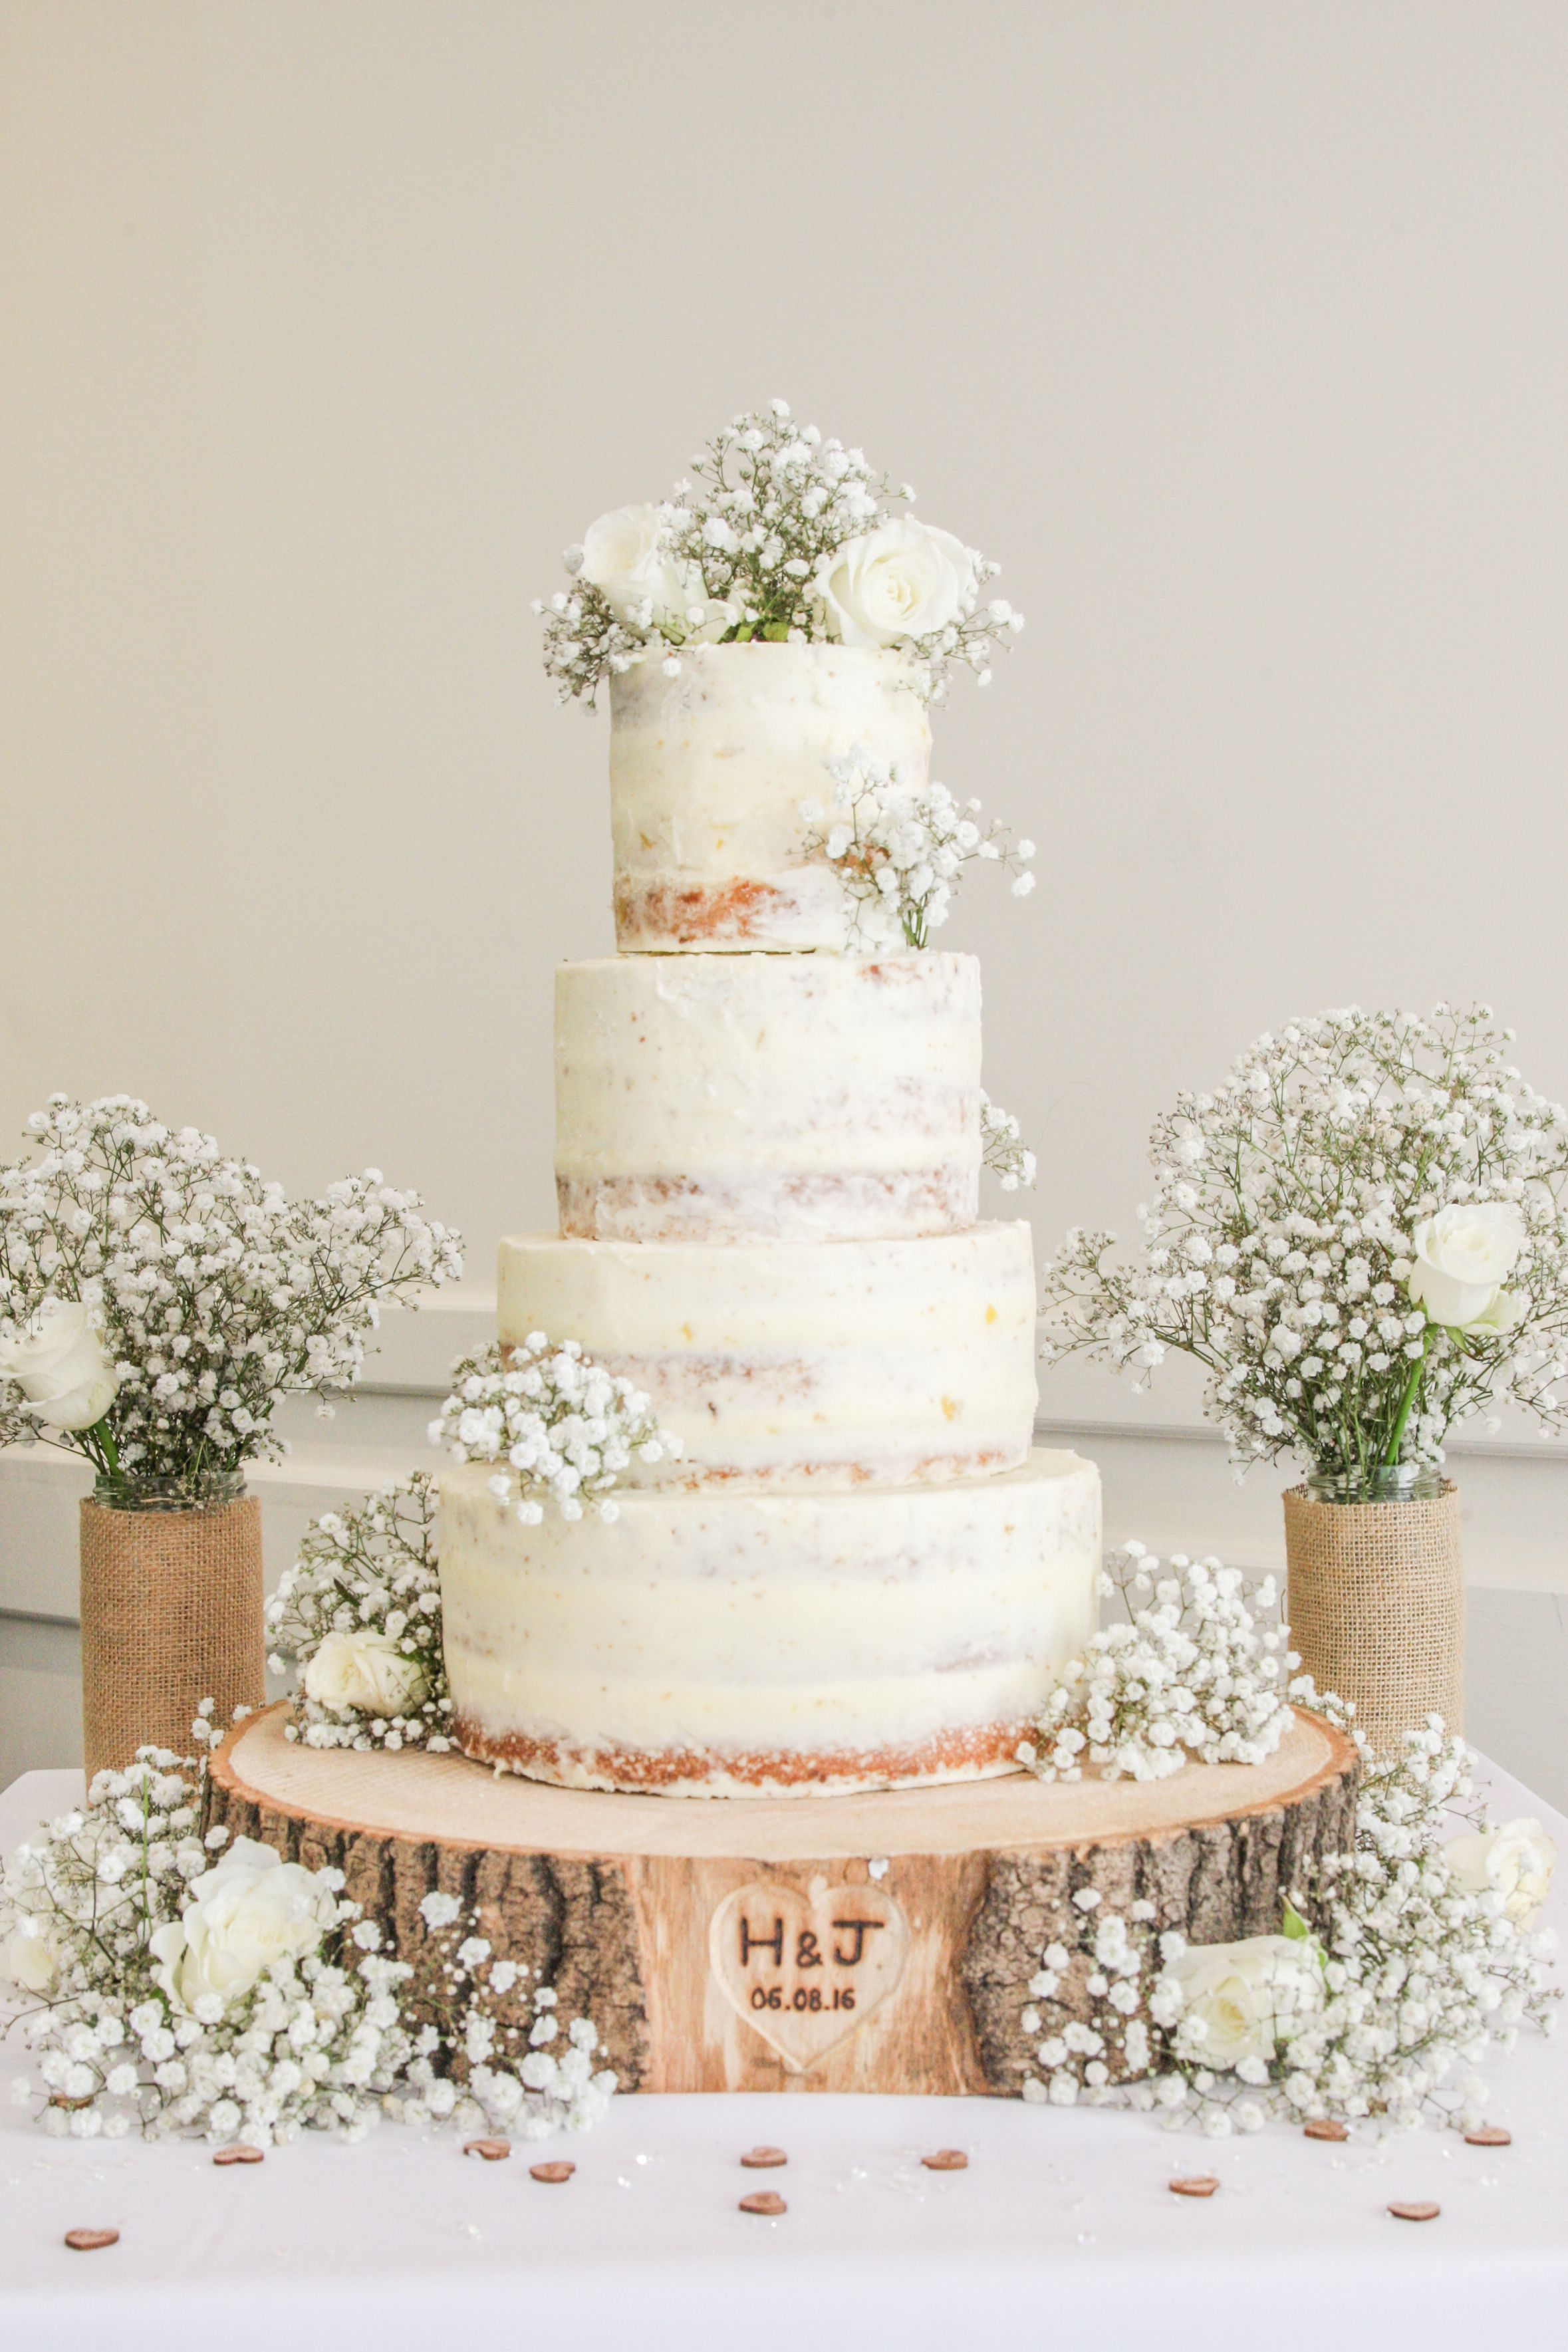 100 Wedding Dresses With Images Wedding Cake Rustic 4 Tier